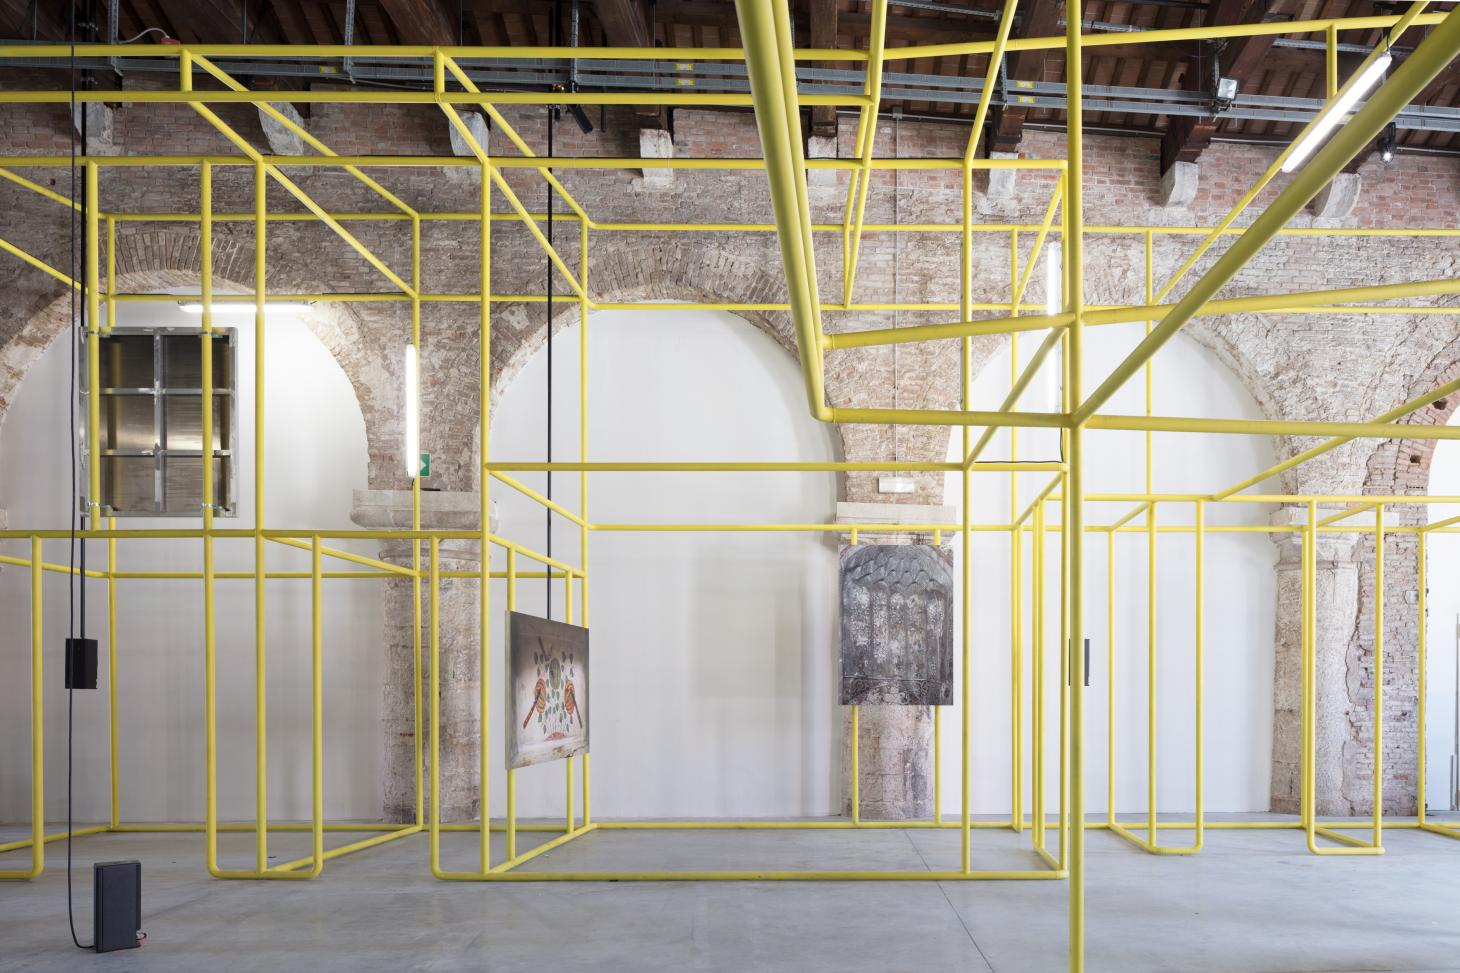 Swss practice Christ and Cantenbein worked on the yellow mesh structure of the Uzbek pavilion